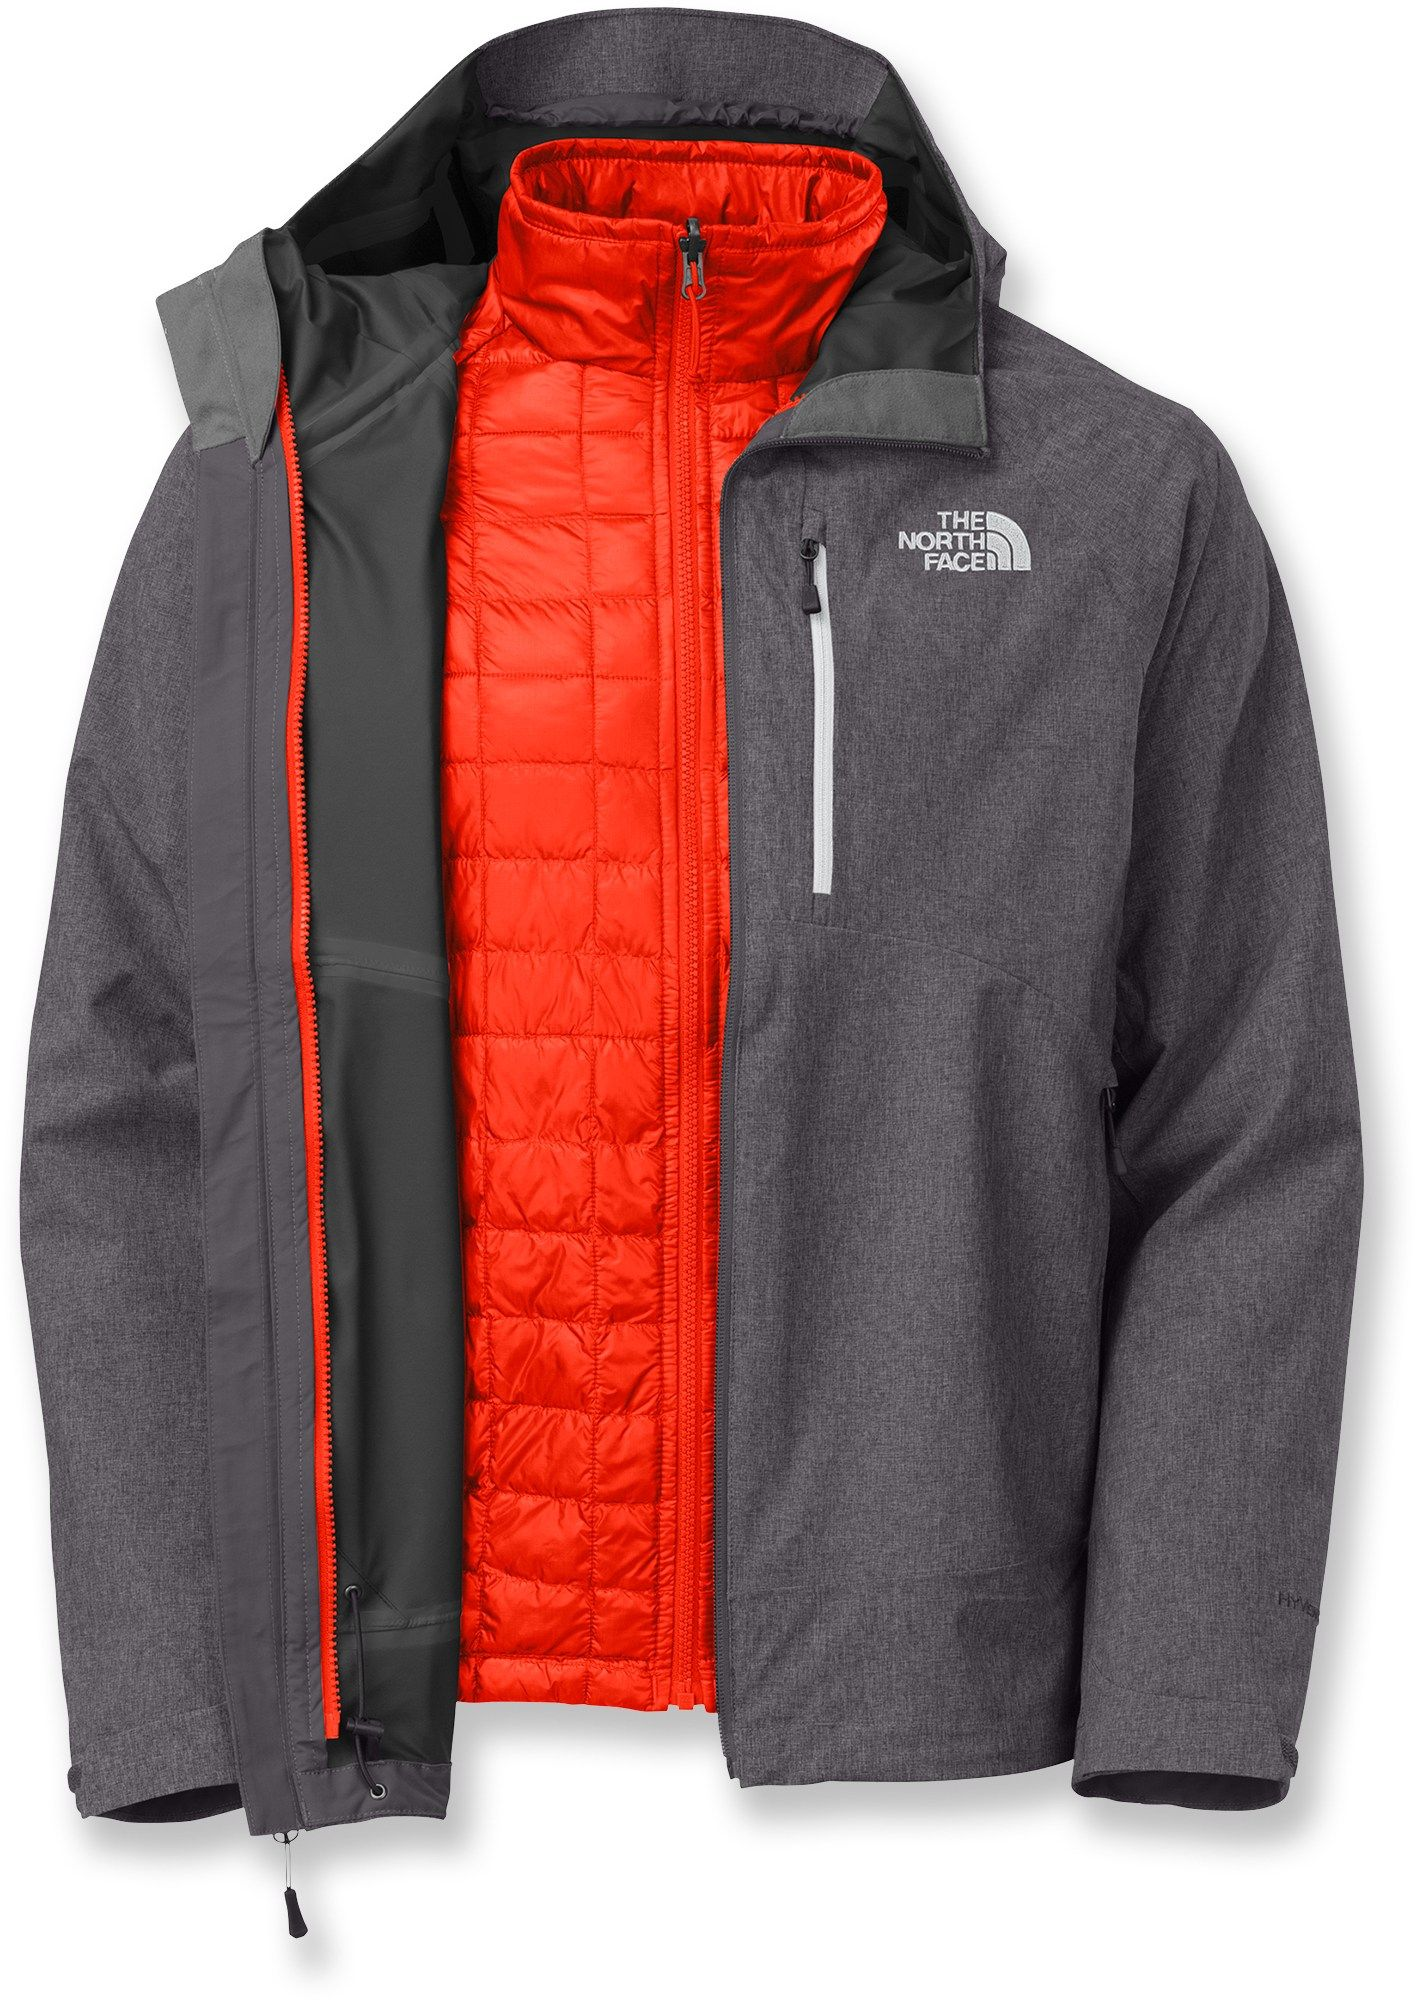 1be1c4897f ThermoBall Triclimate 3-in-1 Jacket - Men's | the northface ...